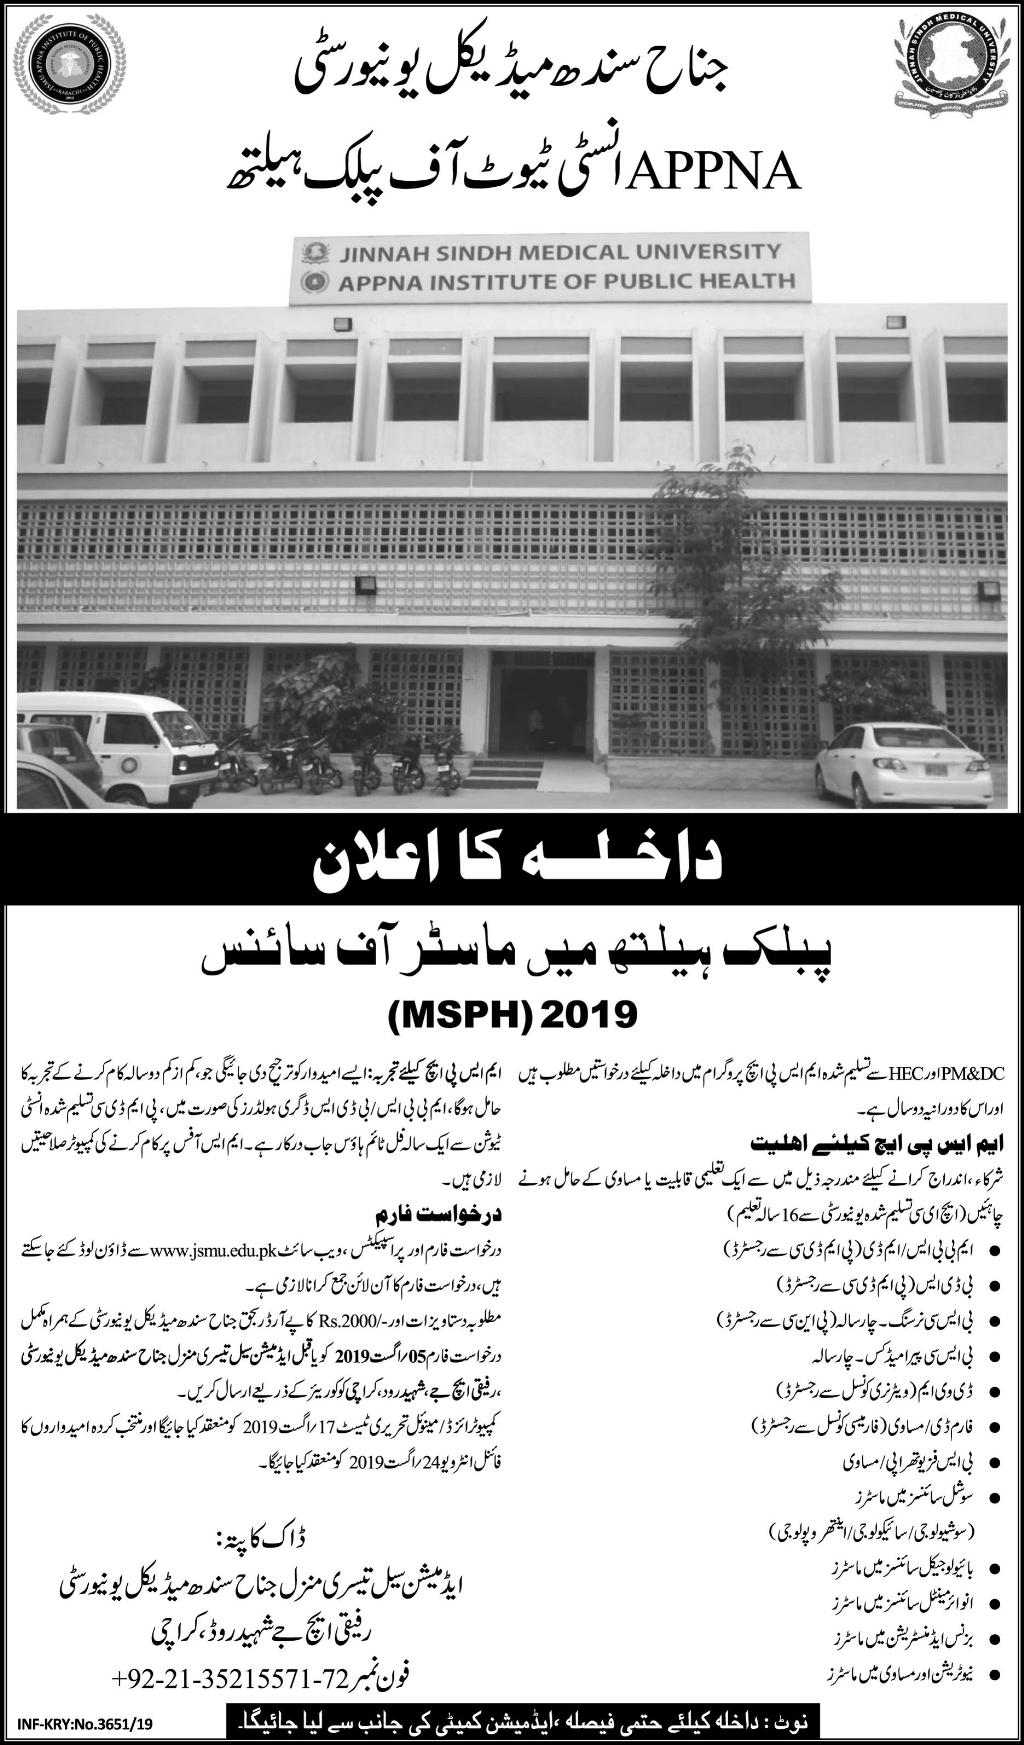 Jinnah Sindh Medical University Karachi Admission 2019 MPH, MSPH Form